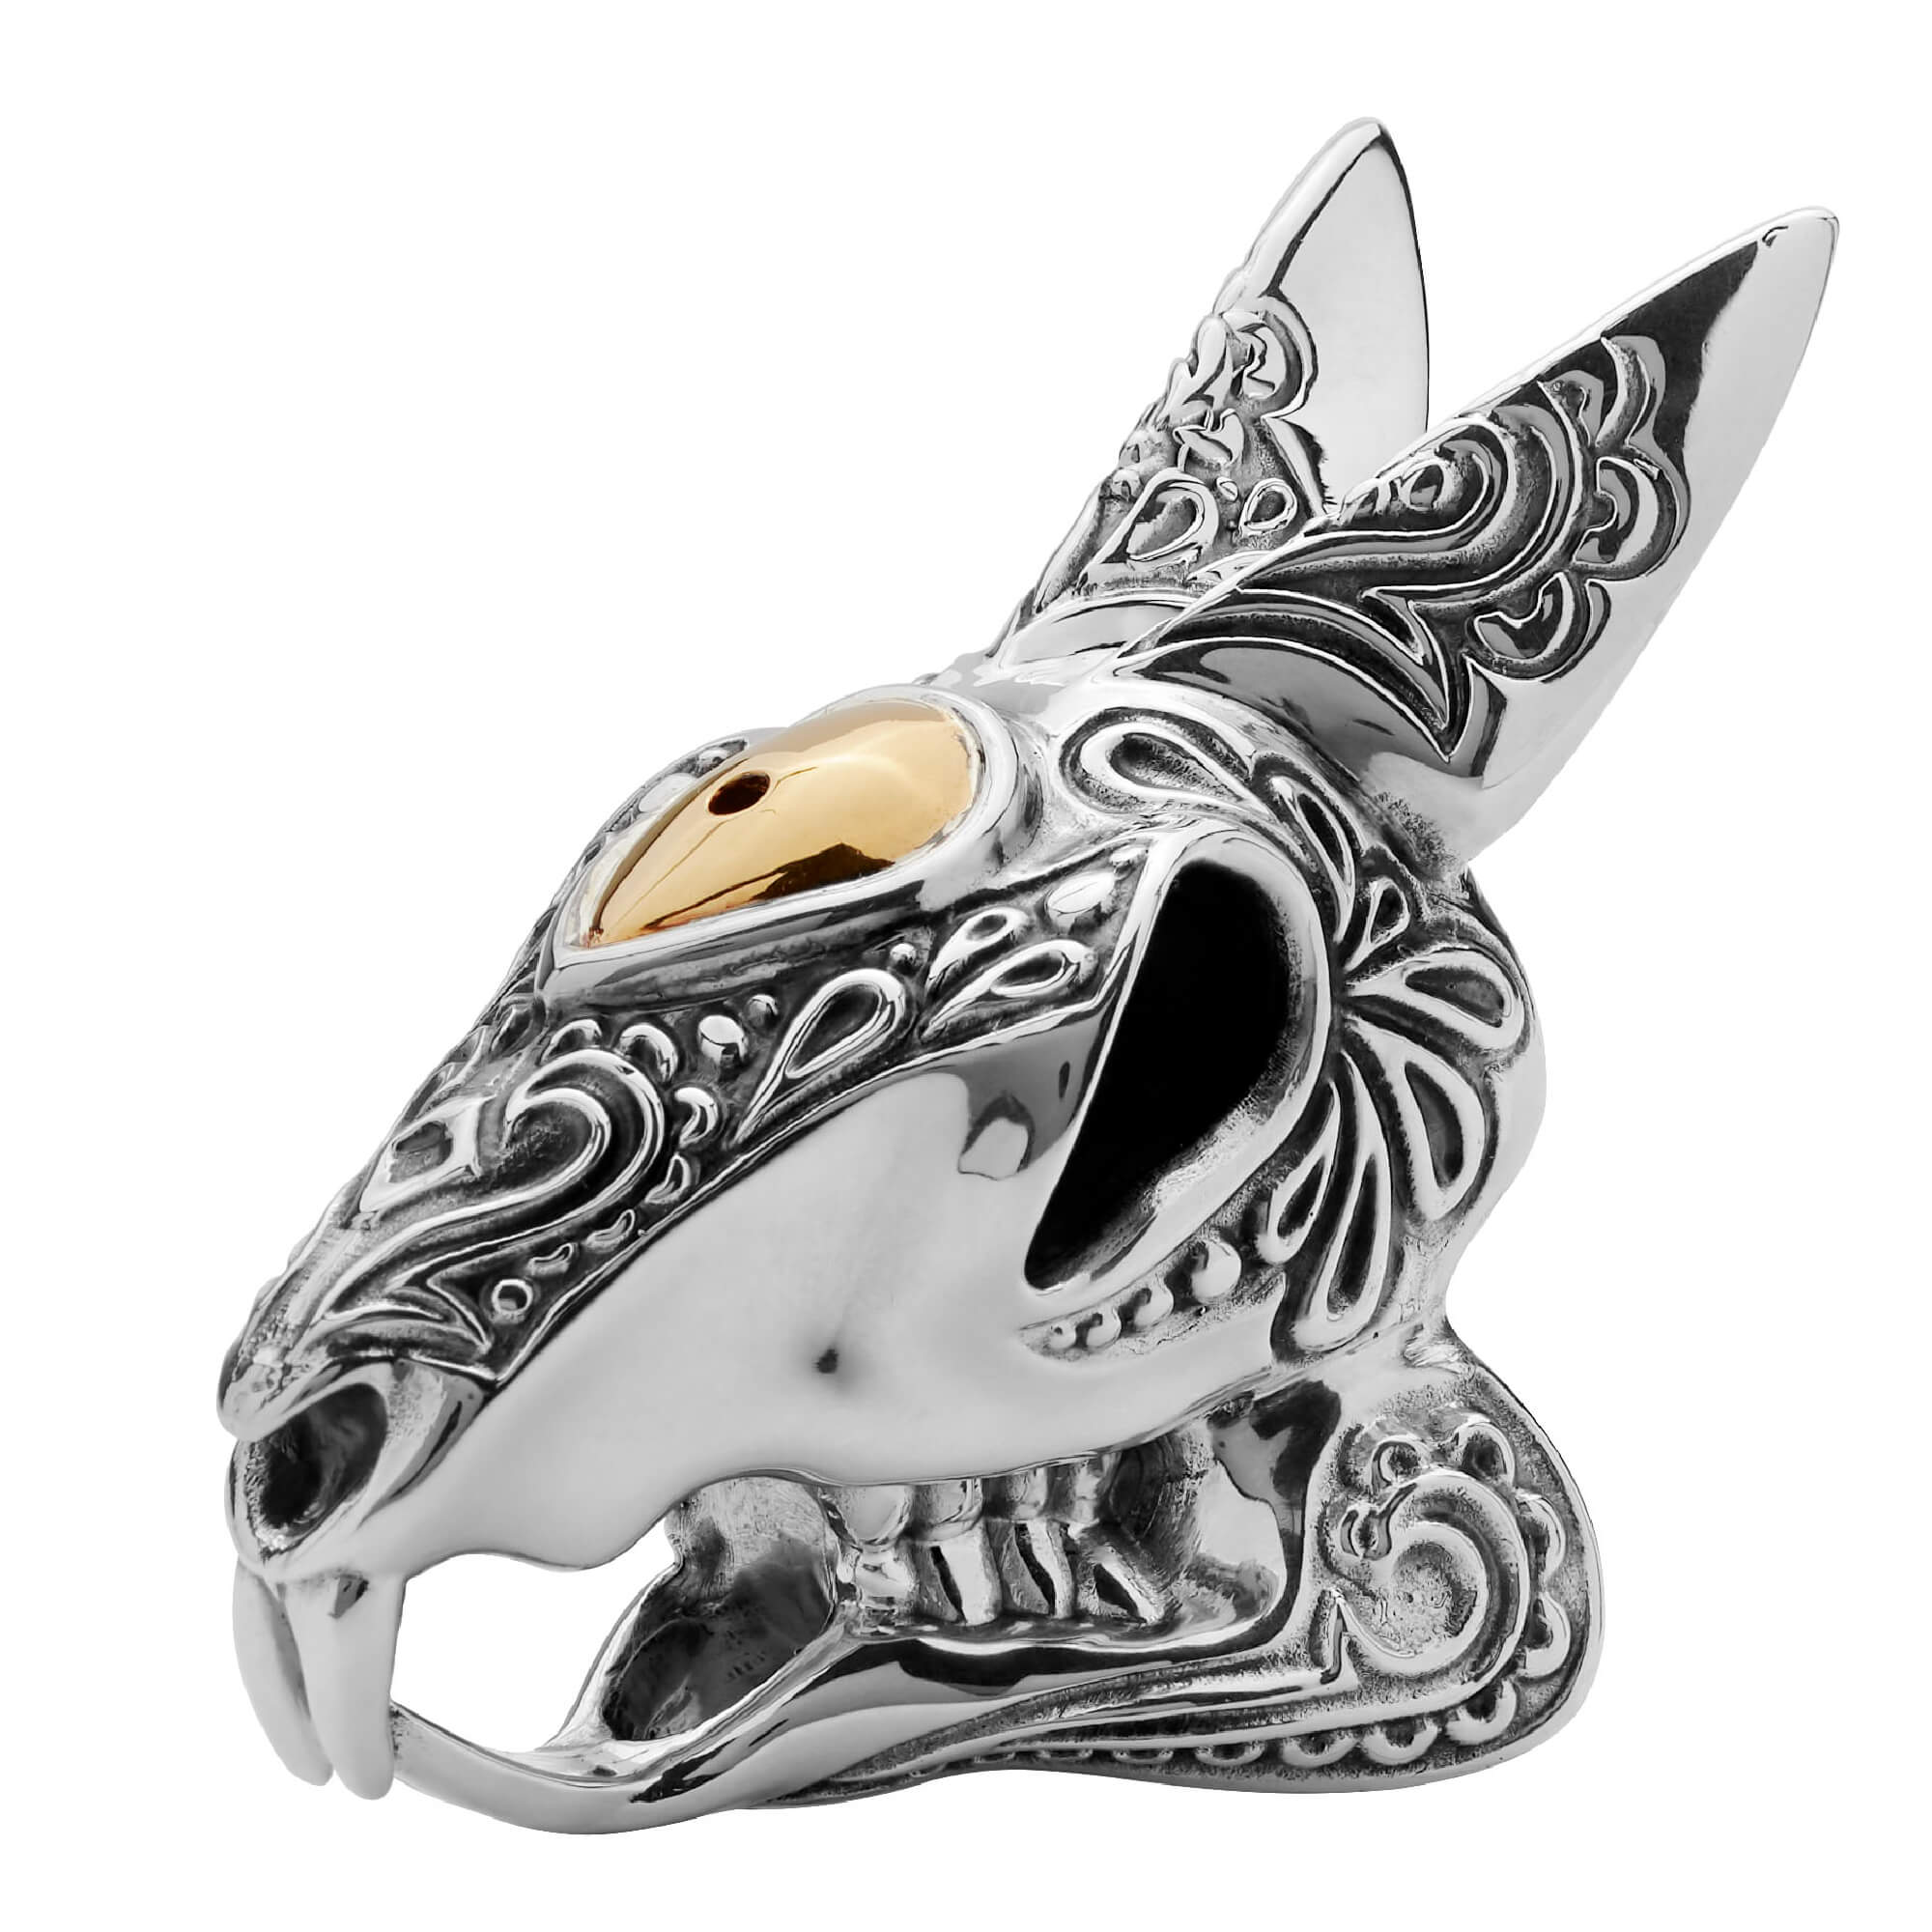 Silver Rabbit Skull Salt Shaker | Stephen Webster